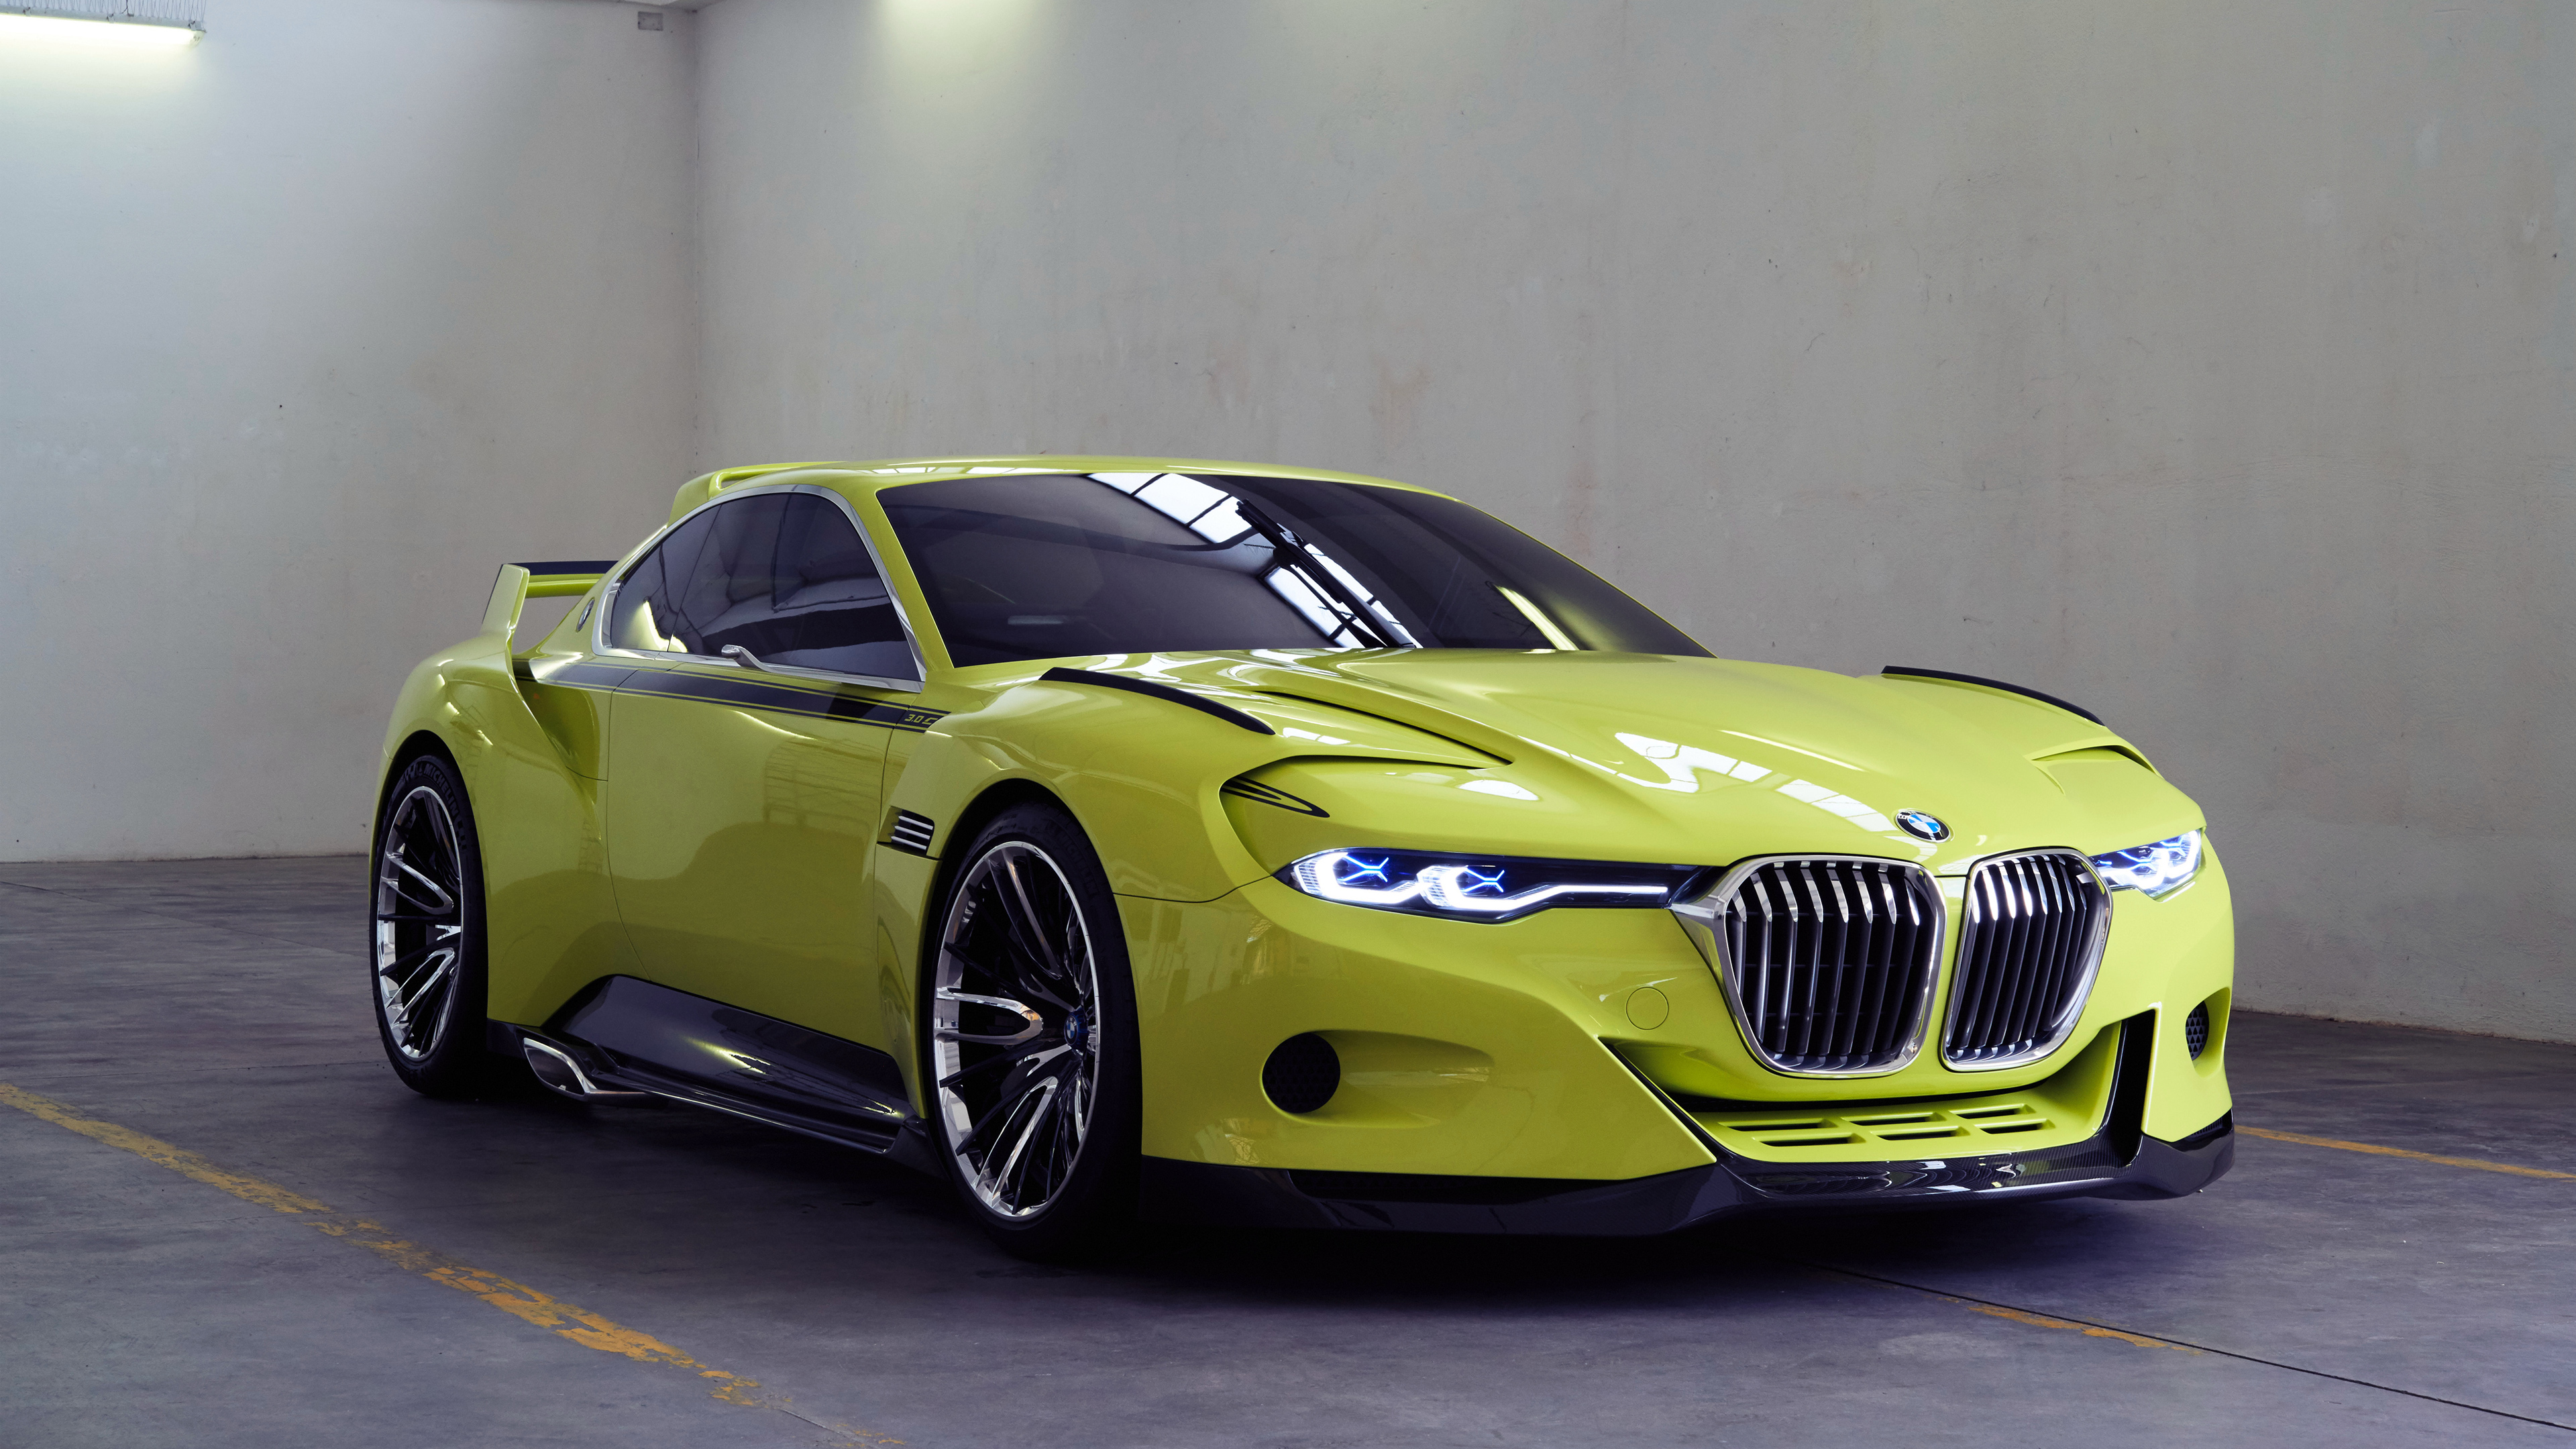 Bmw csl hommage 2015 wallpaper hd car wallpapers id 5858 - Wallpaper hd 4k car ...